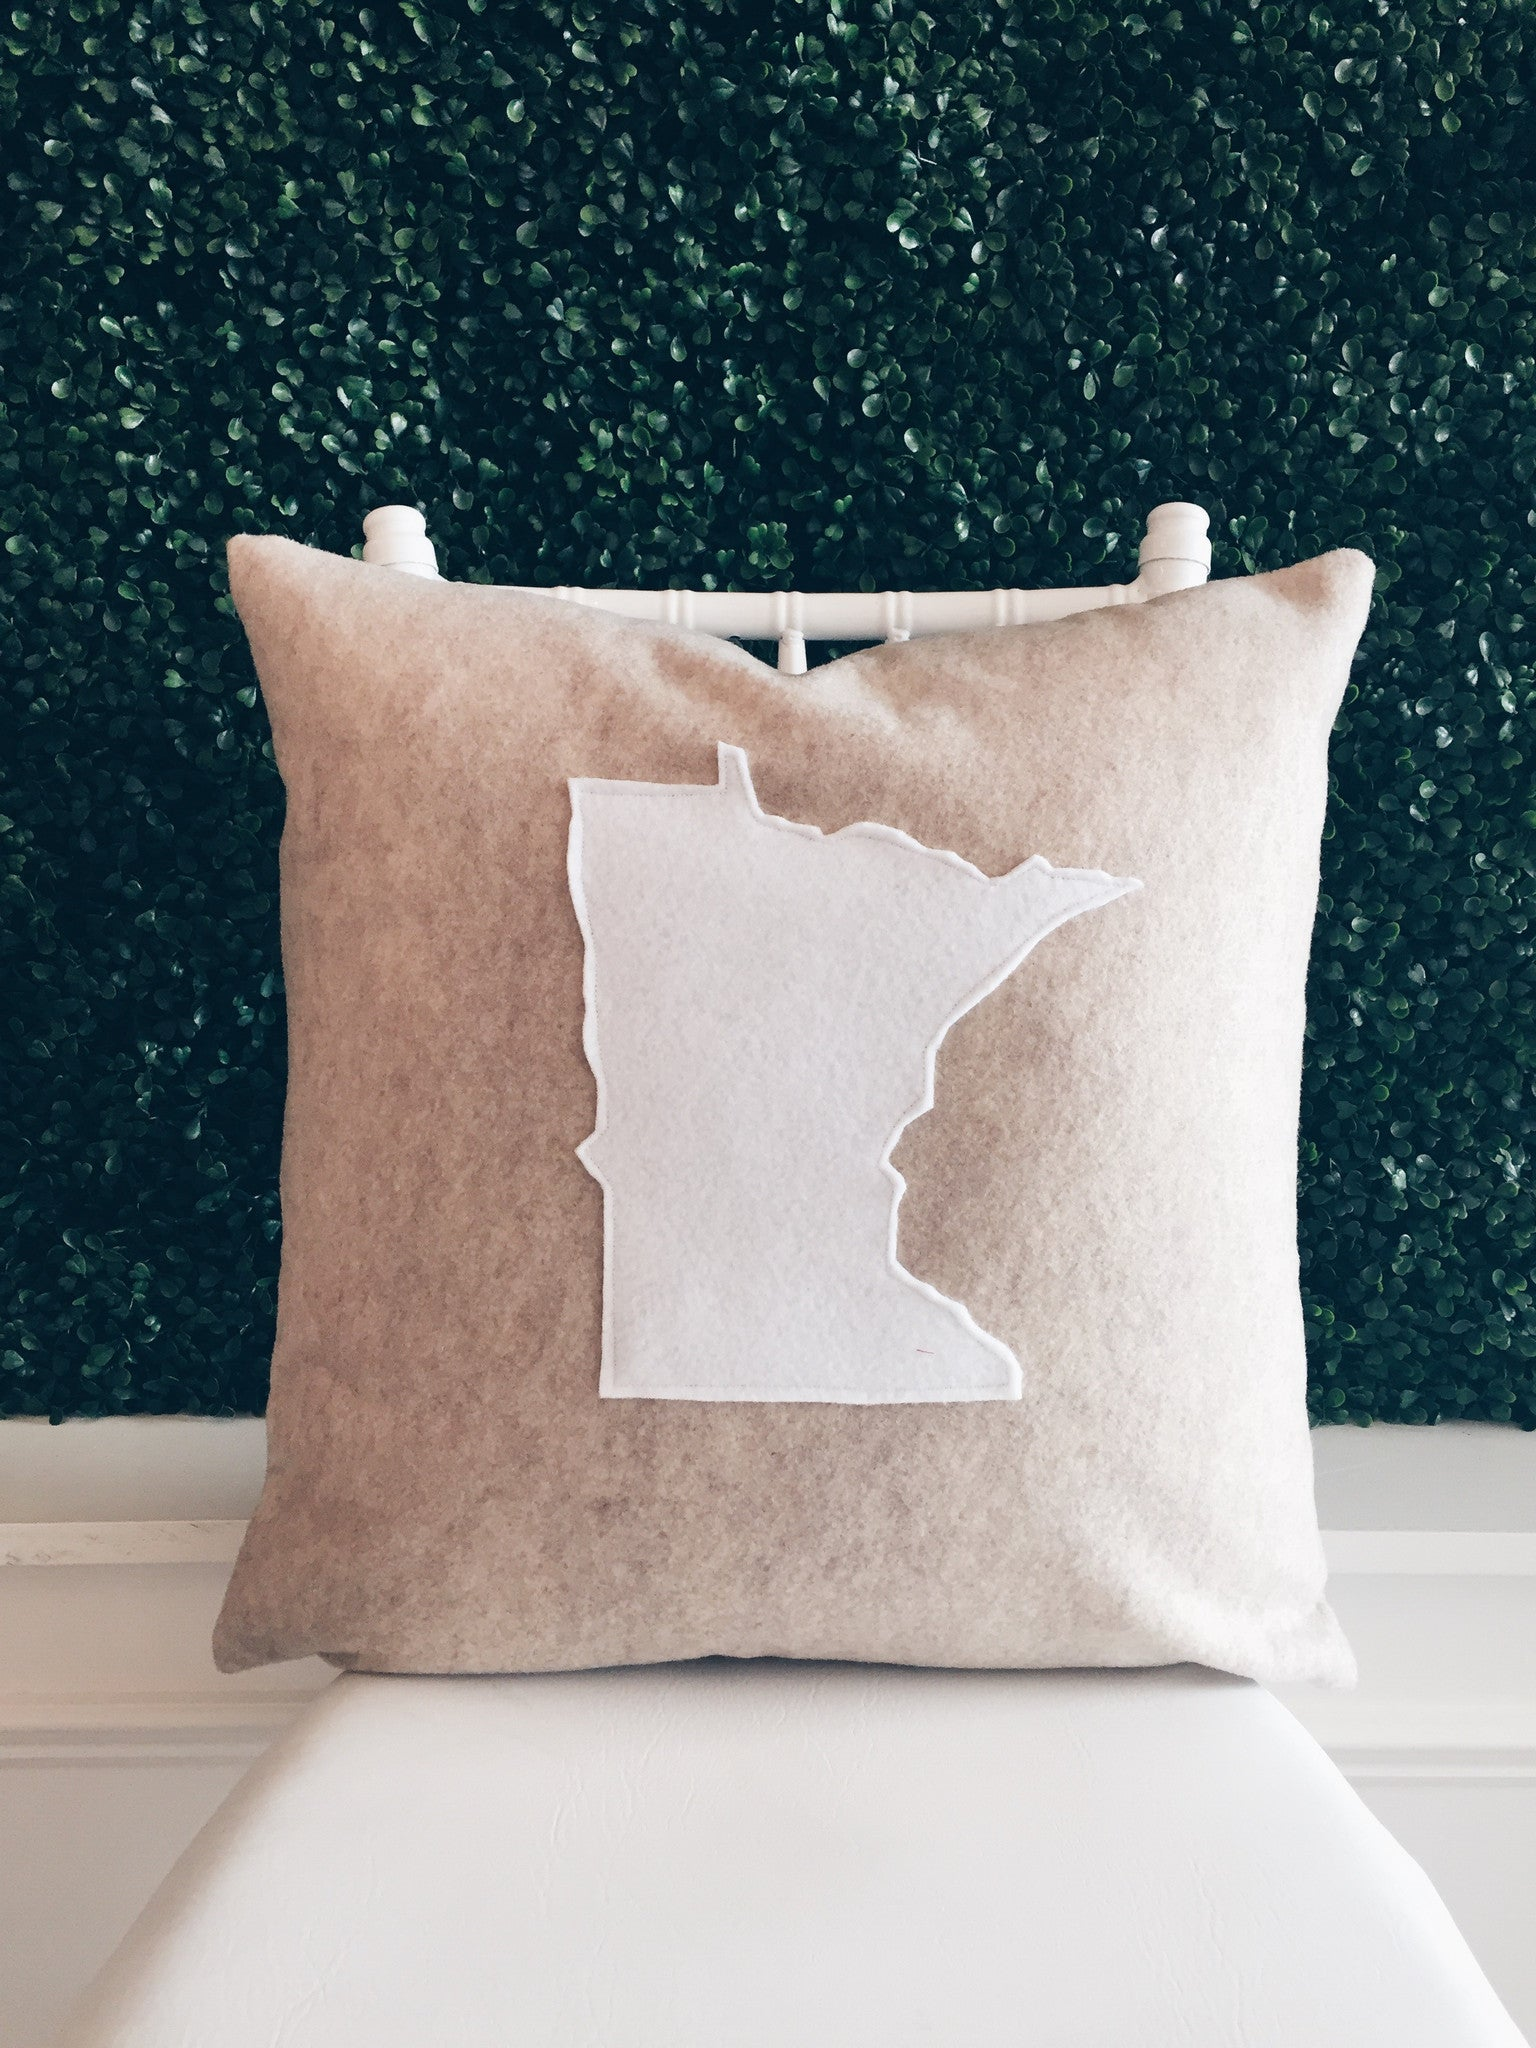 Oatmeal and White State Silhouette Pillow Covers